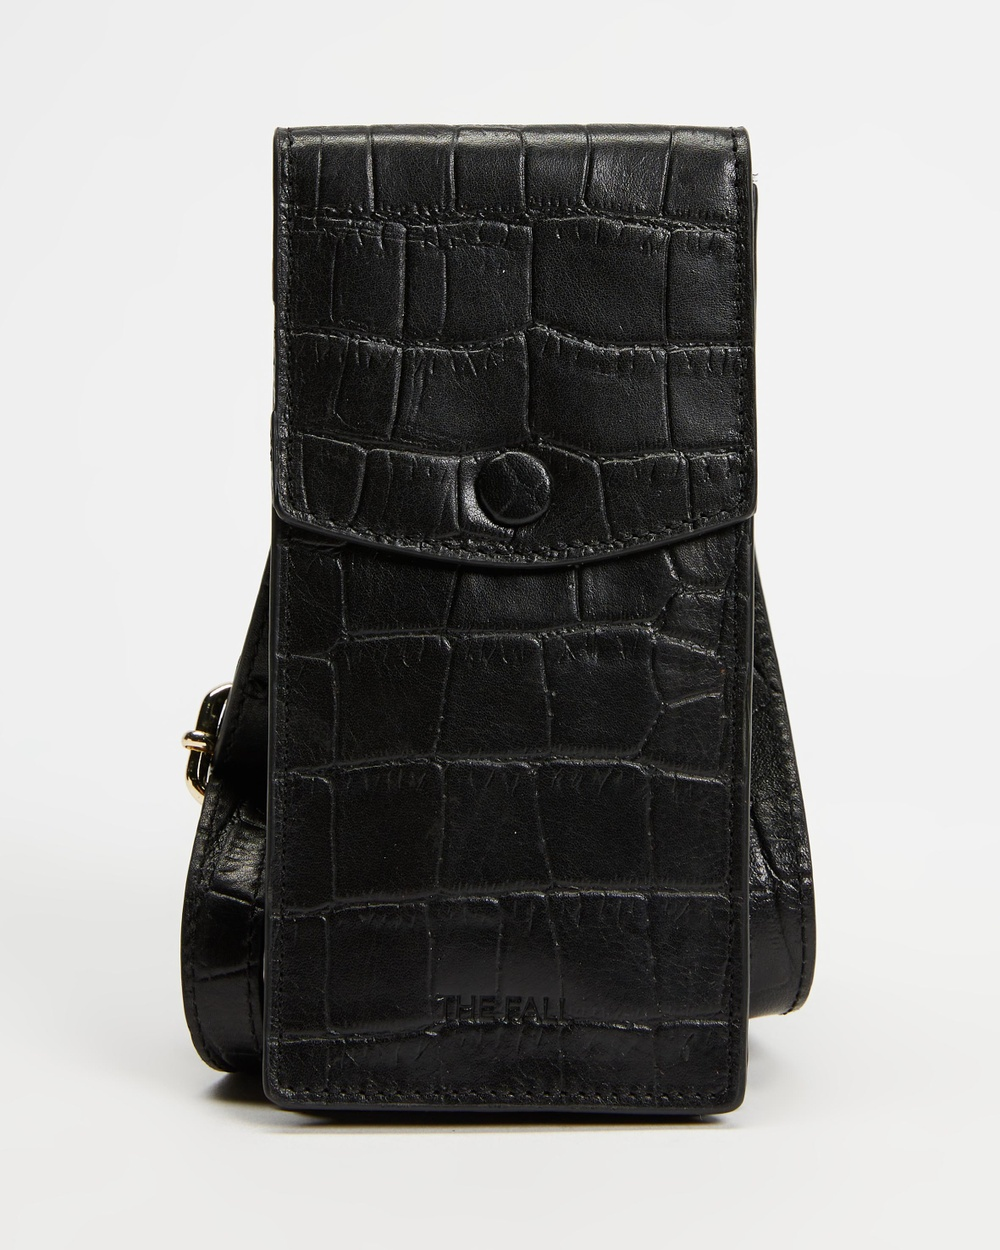 Fall The Label Phone Pouch Tech Accessories Black Croc